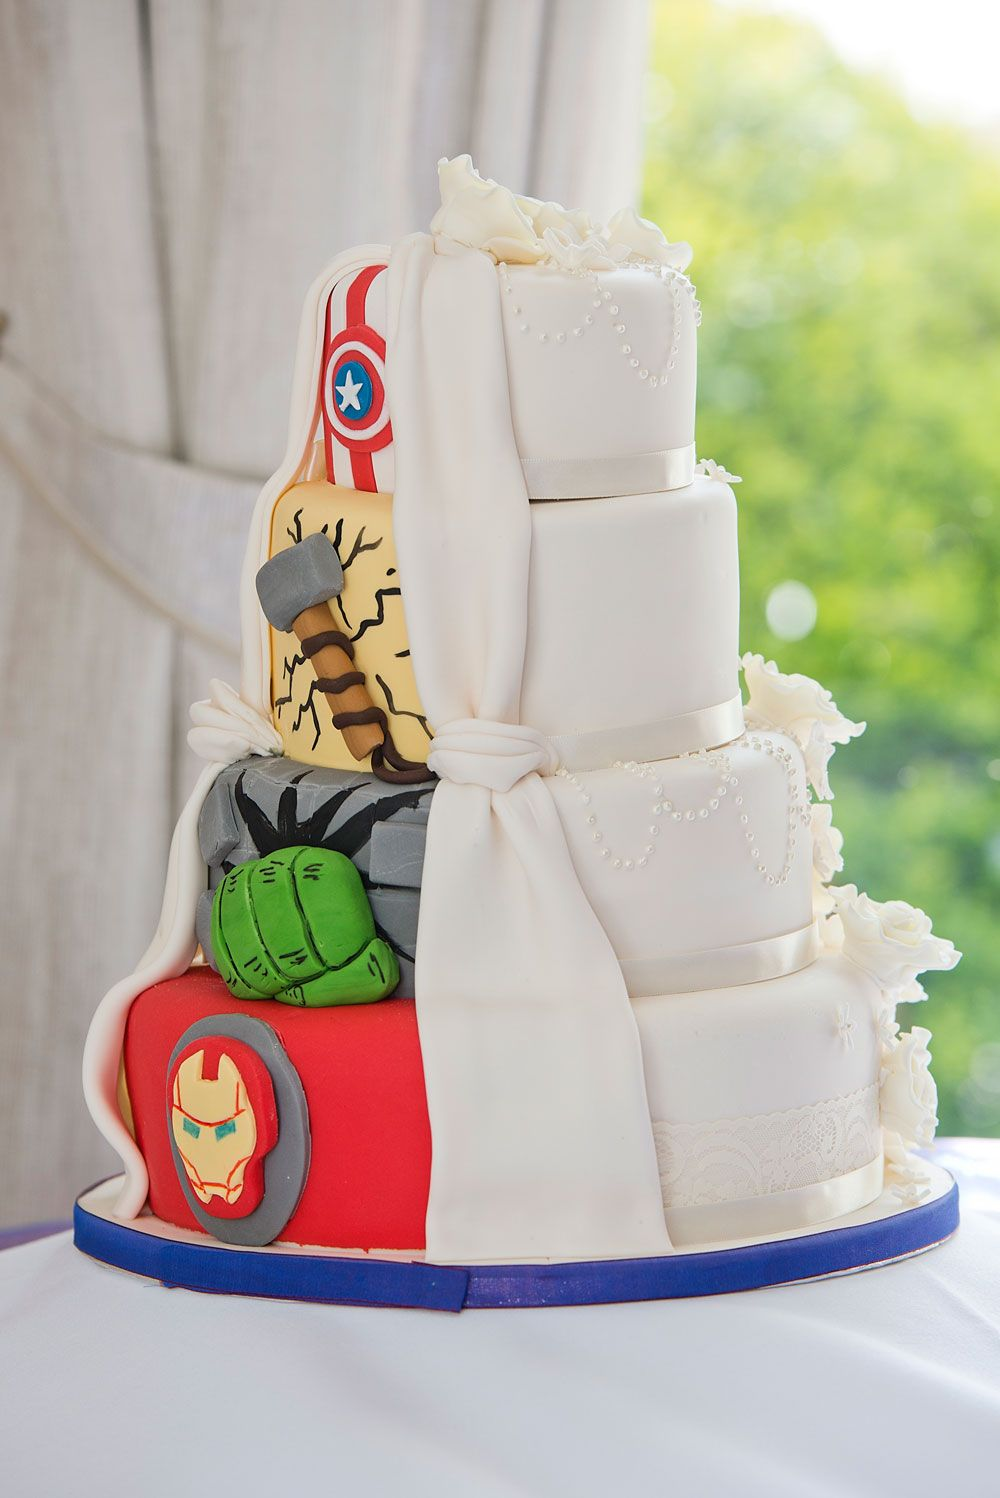 Superhero Wedding Cakes That Will Make Your Day Totally Epic ...